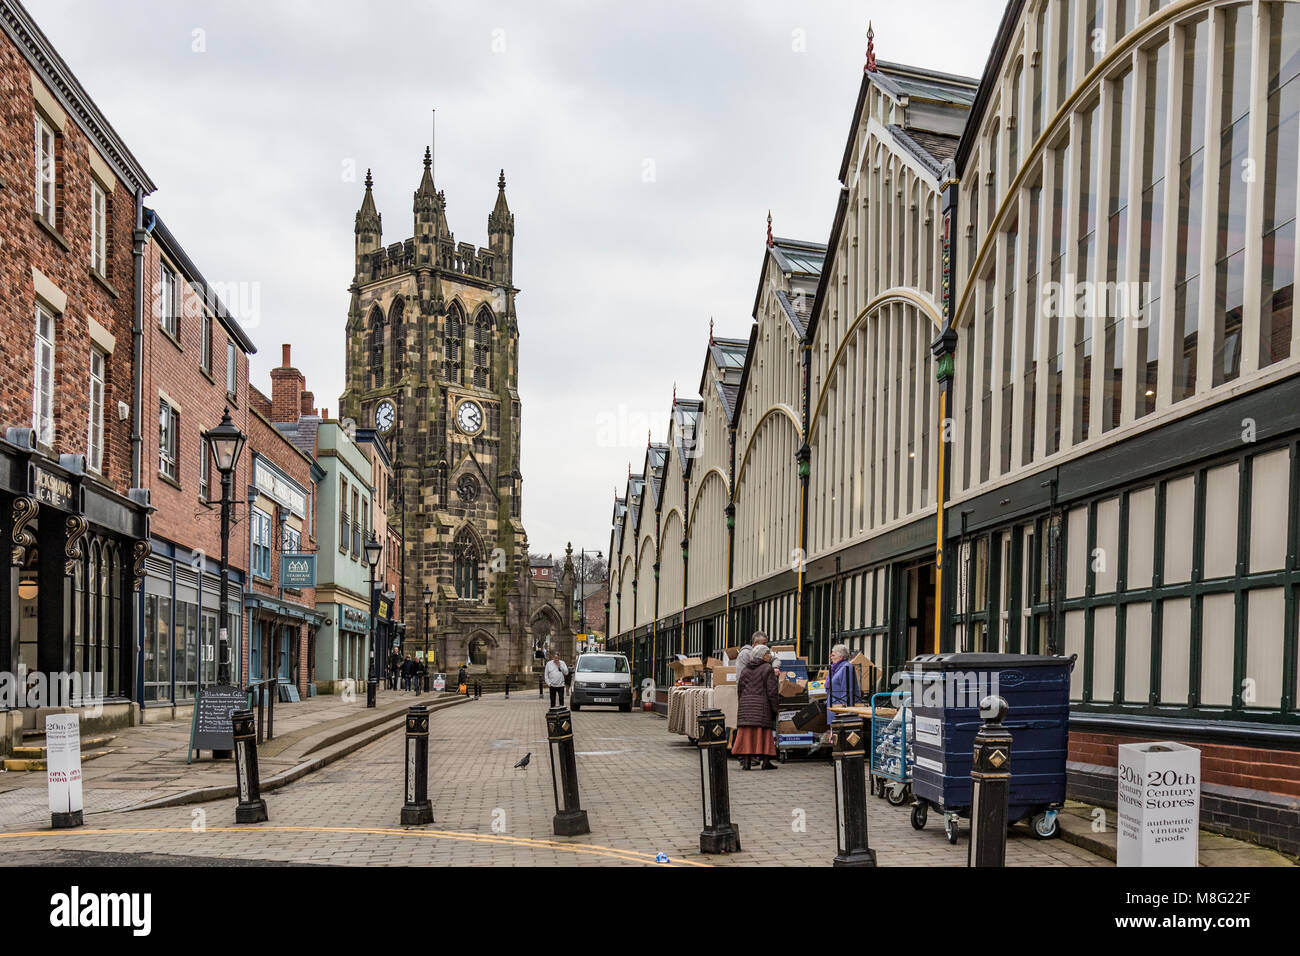 Stockport Market, Town Centre, Stockport, Greater Manchester. UK - Stock Image